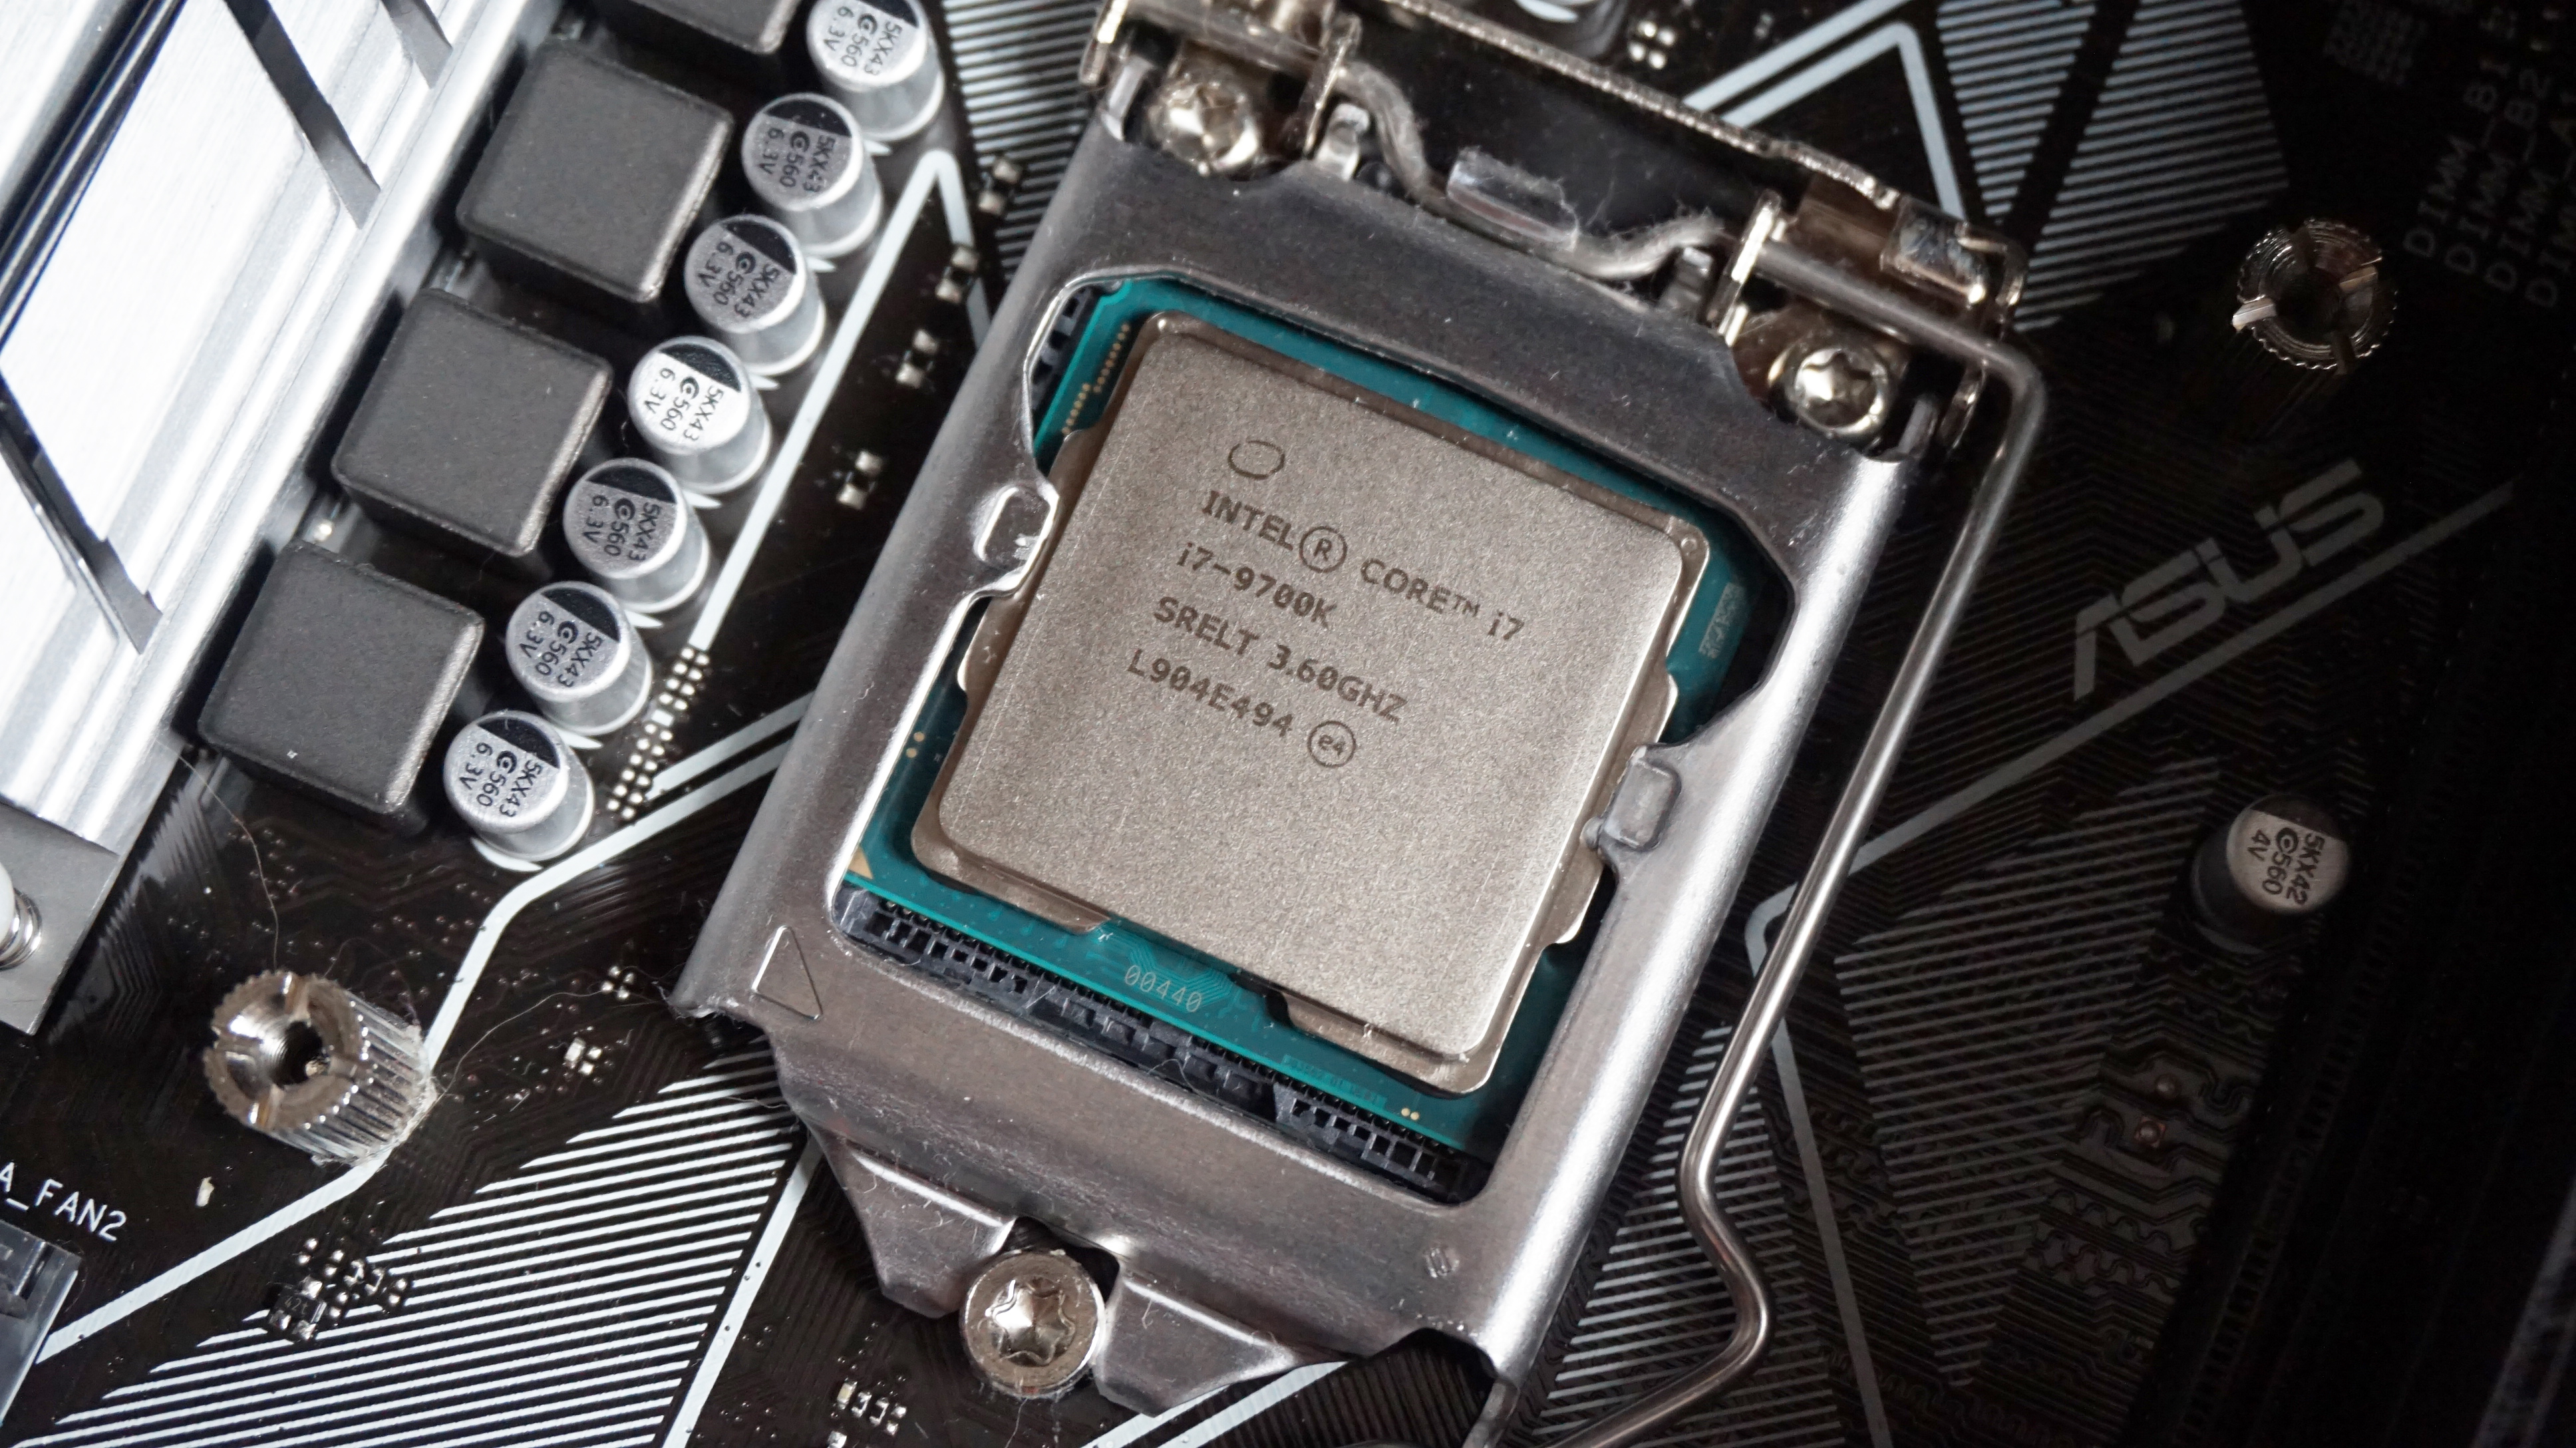 Best gaming CPU 2019: The top AMD and Intel processors for gaming